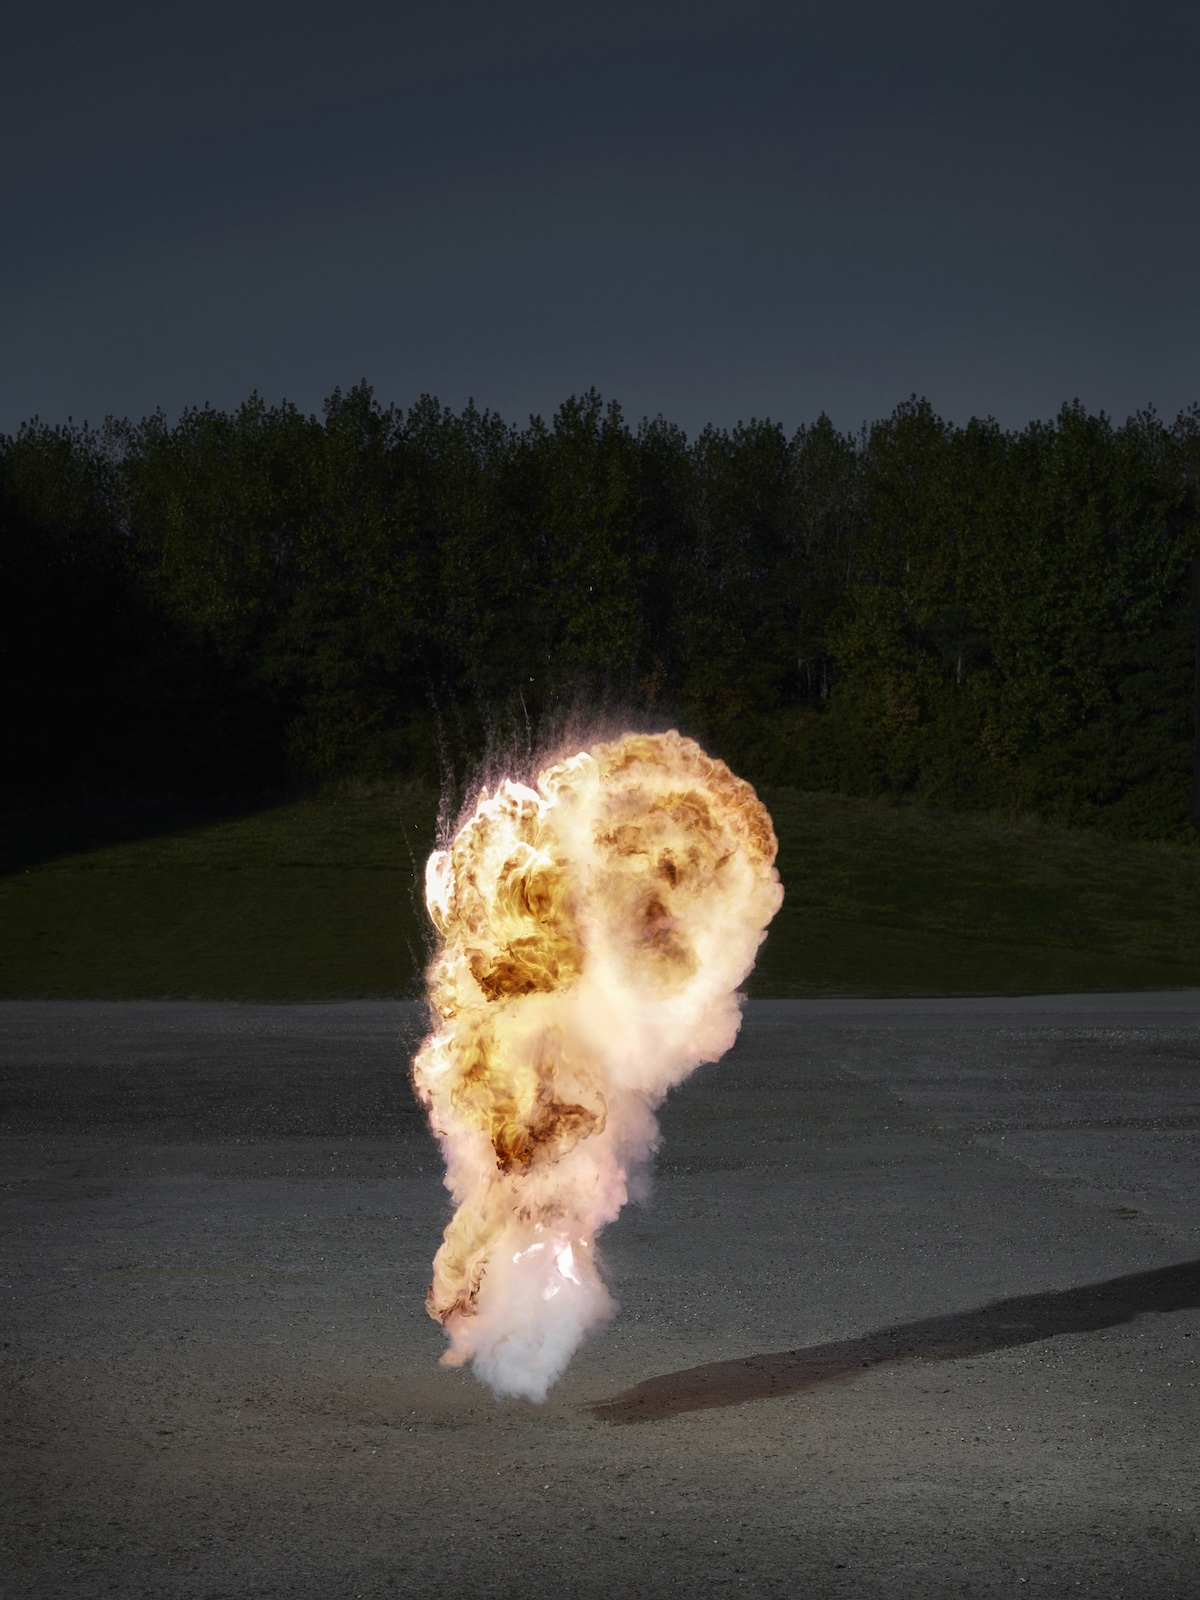 art_kenhermann_explosion2-0_09